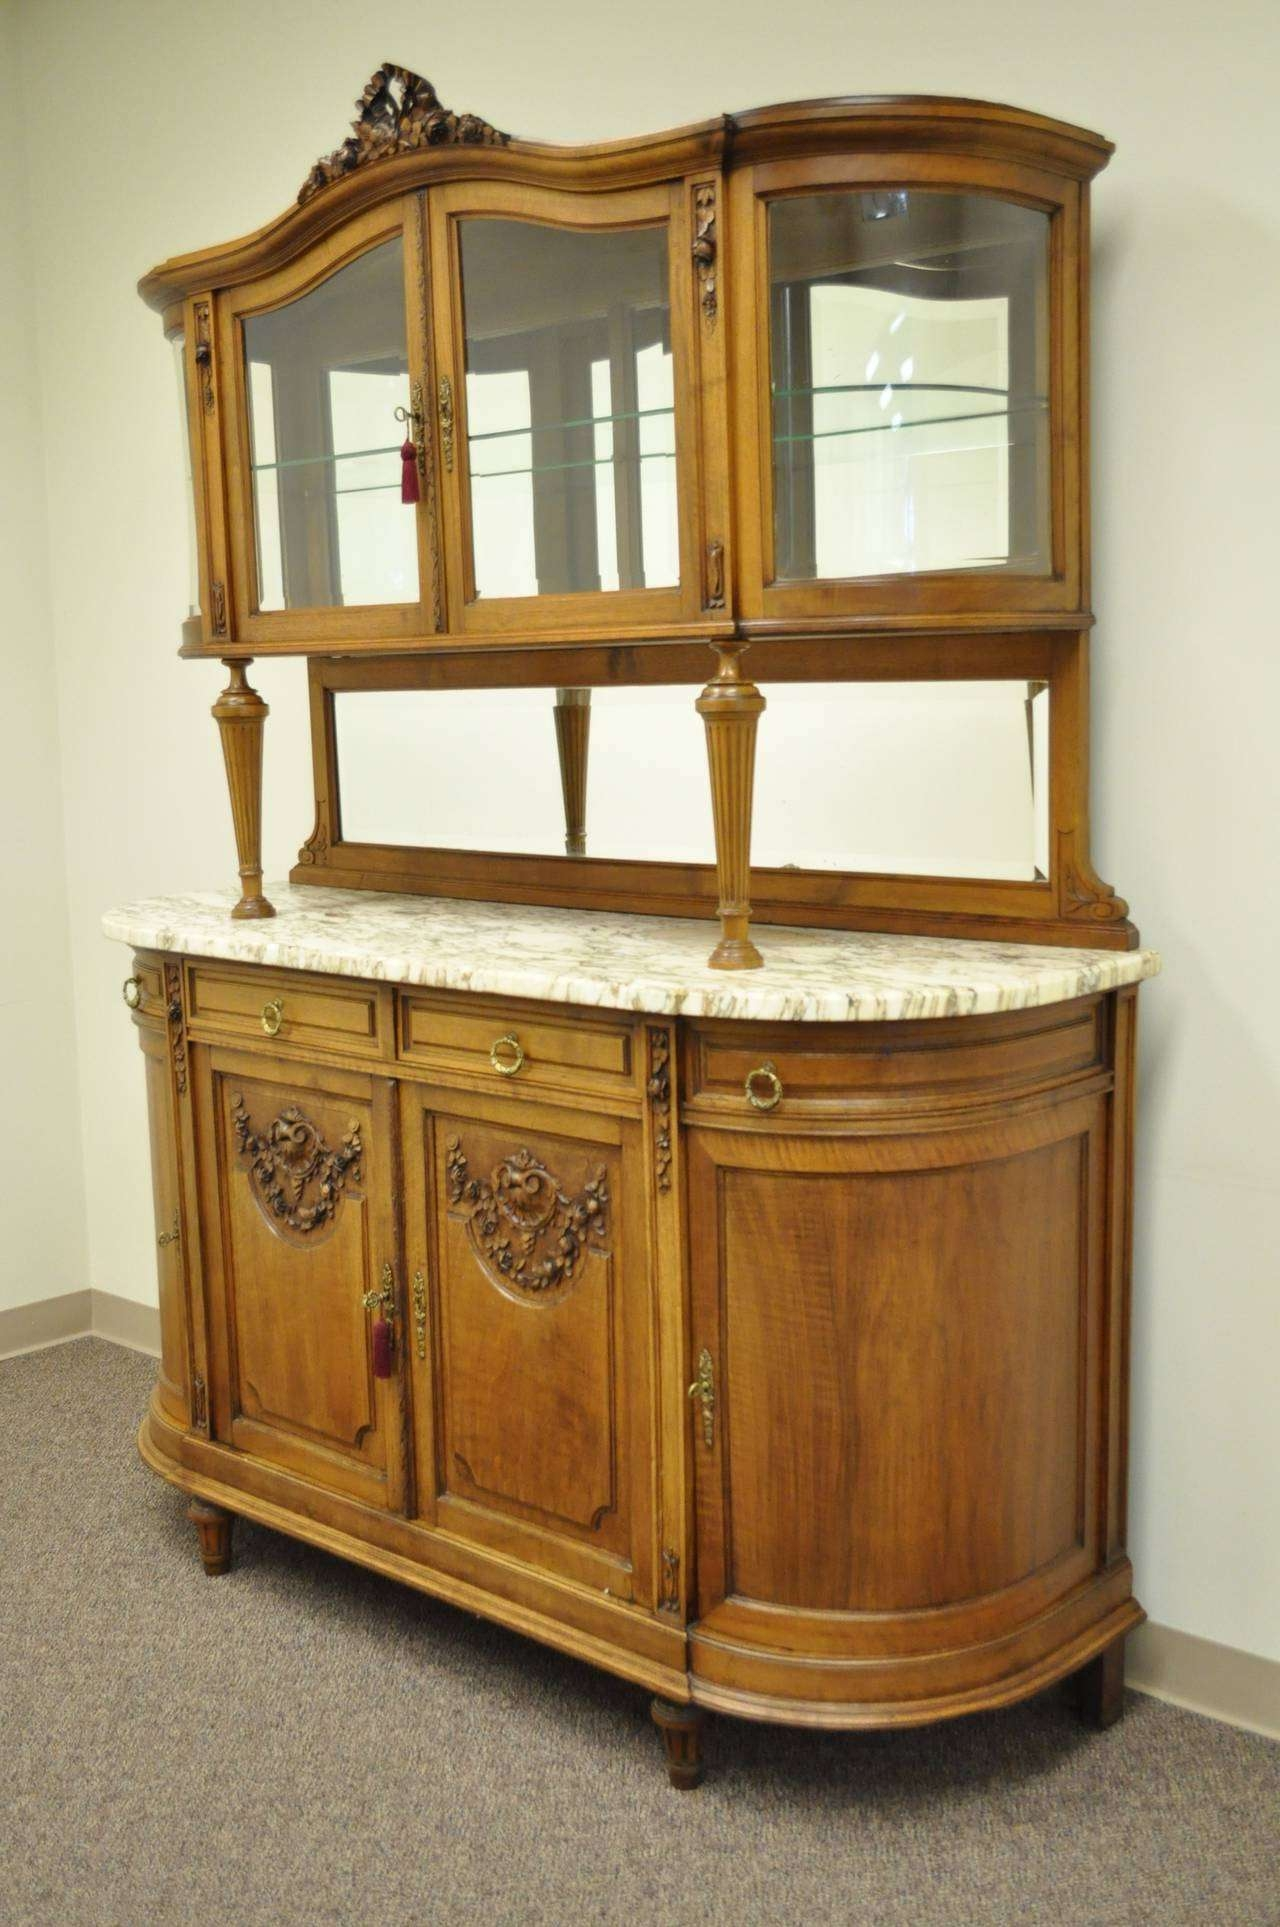 French Louis Xvi Style Marble Top Sideboard Or Curio Cabinet Pertaining To Sideboards With Marble Tops (View 20 of 20)